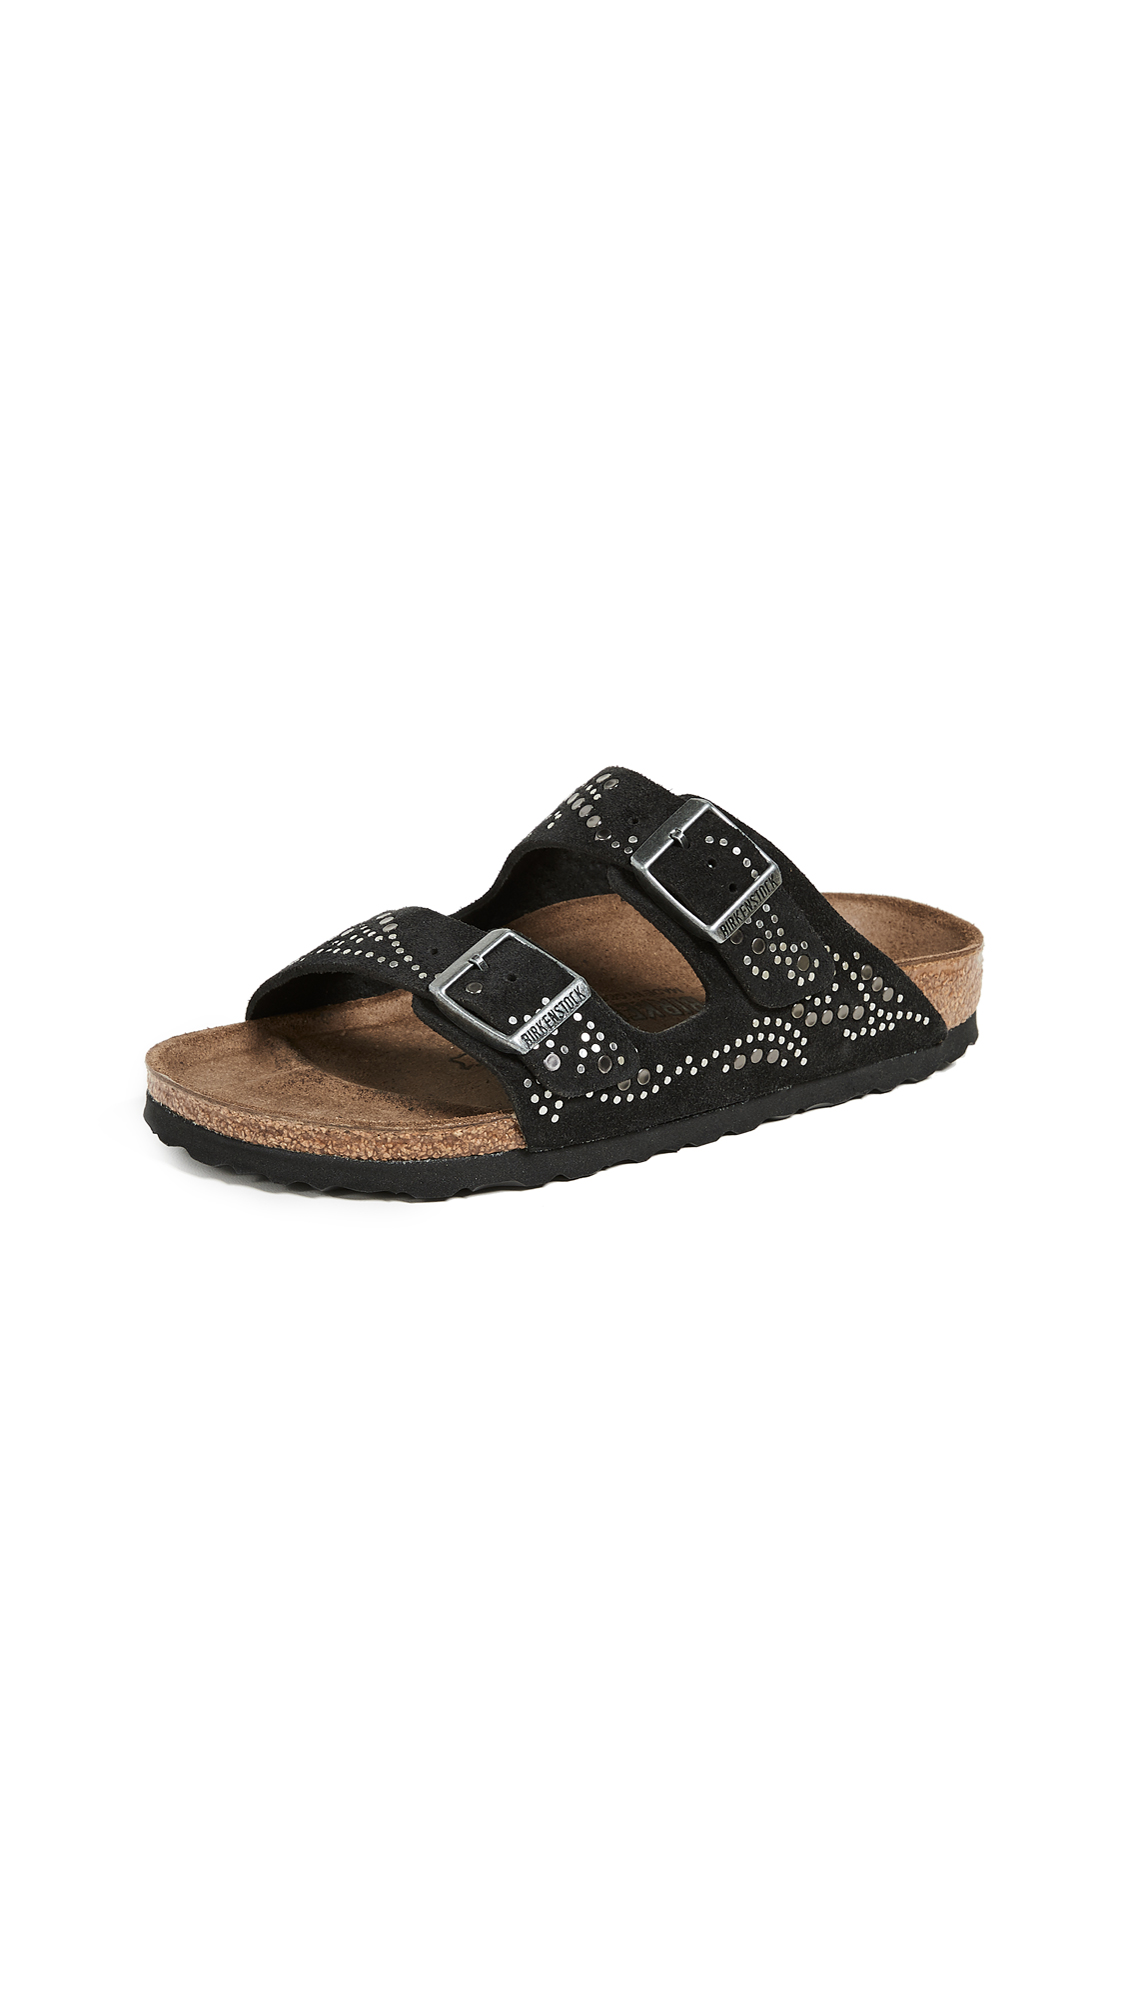 Birkenstock Arizona Rivet Sandals